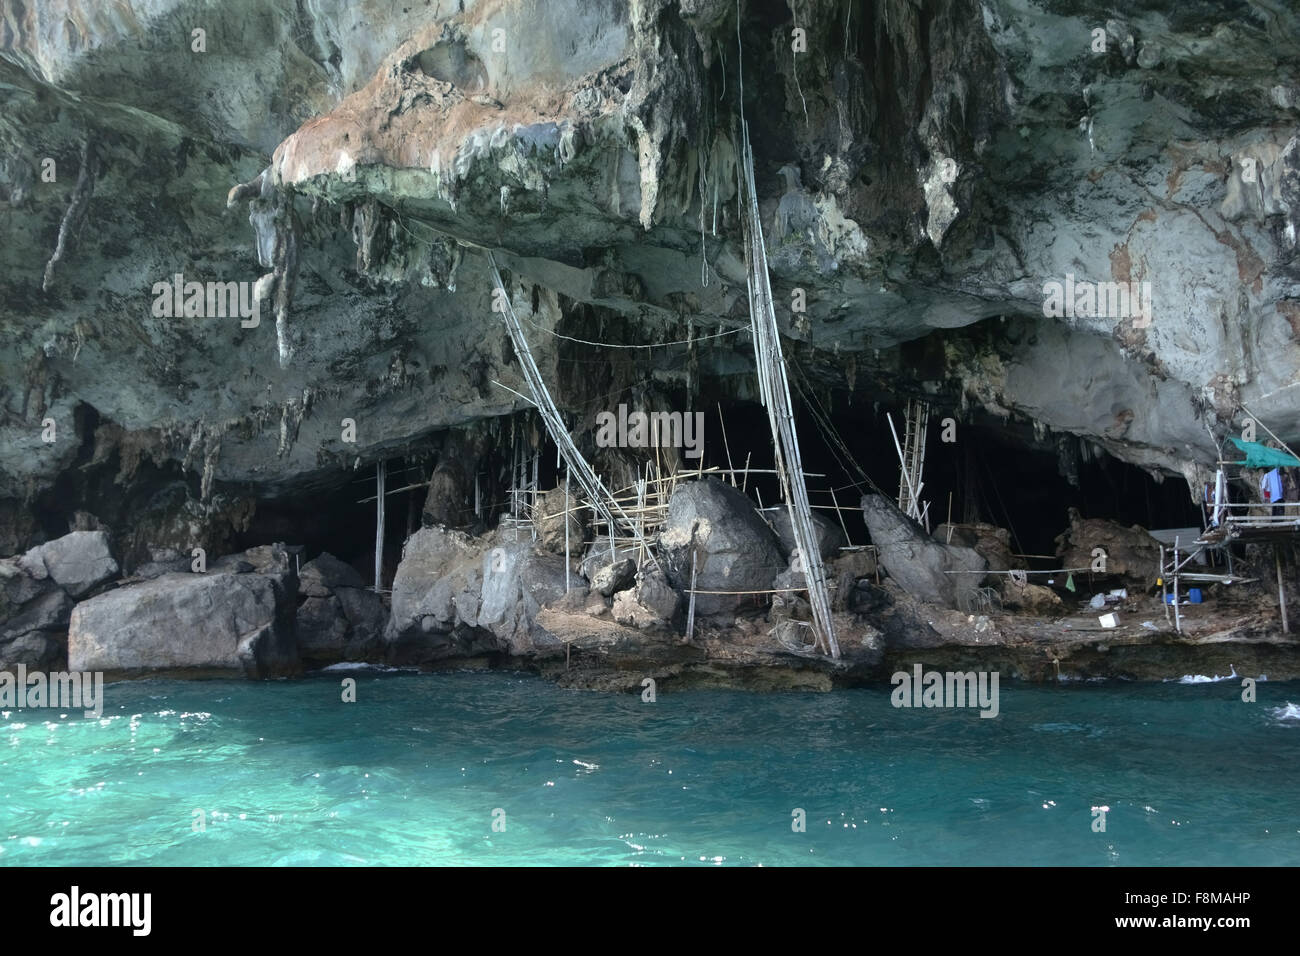 Cave on Koh Hong island with equipment for harvesting nests of edible-nest swiflets, Thailand - Stock Image